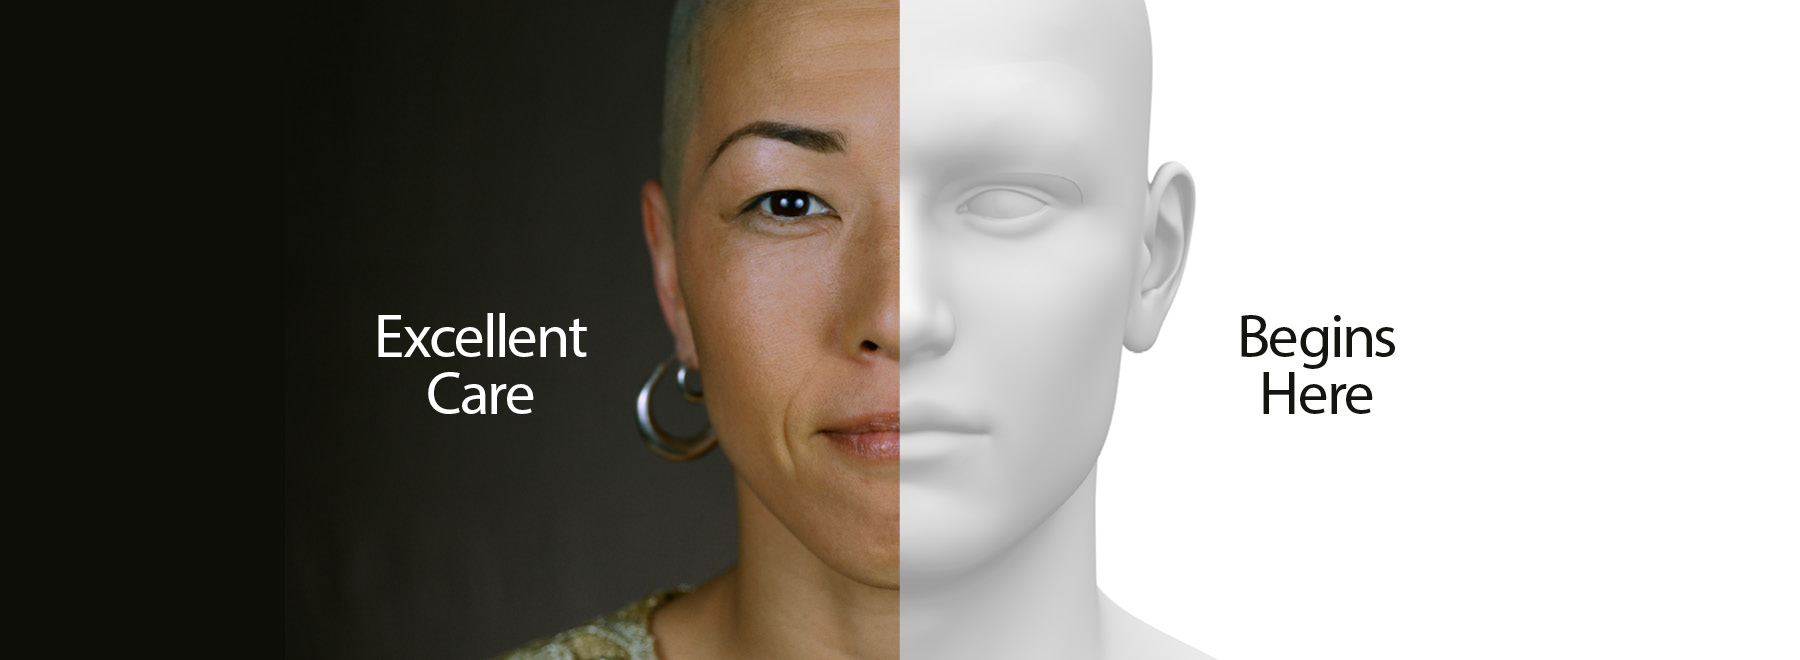 Graphic half simulation mannequin face, half woman's face. Text says